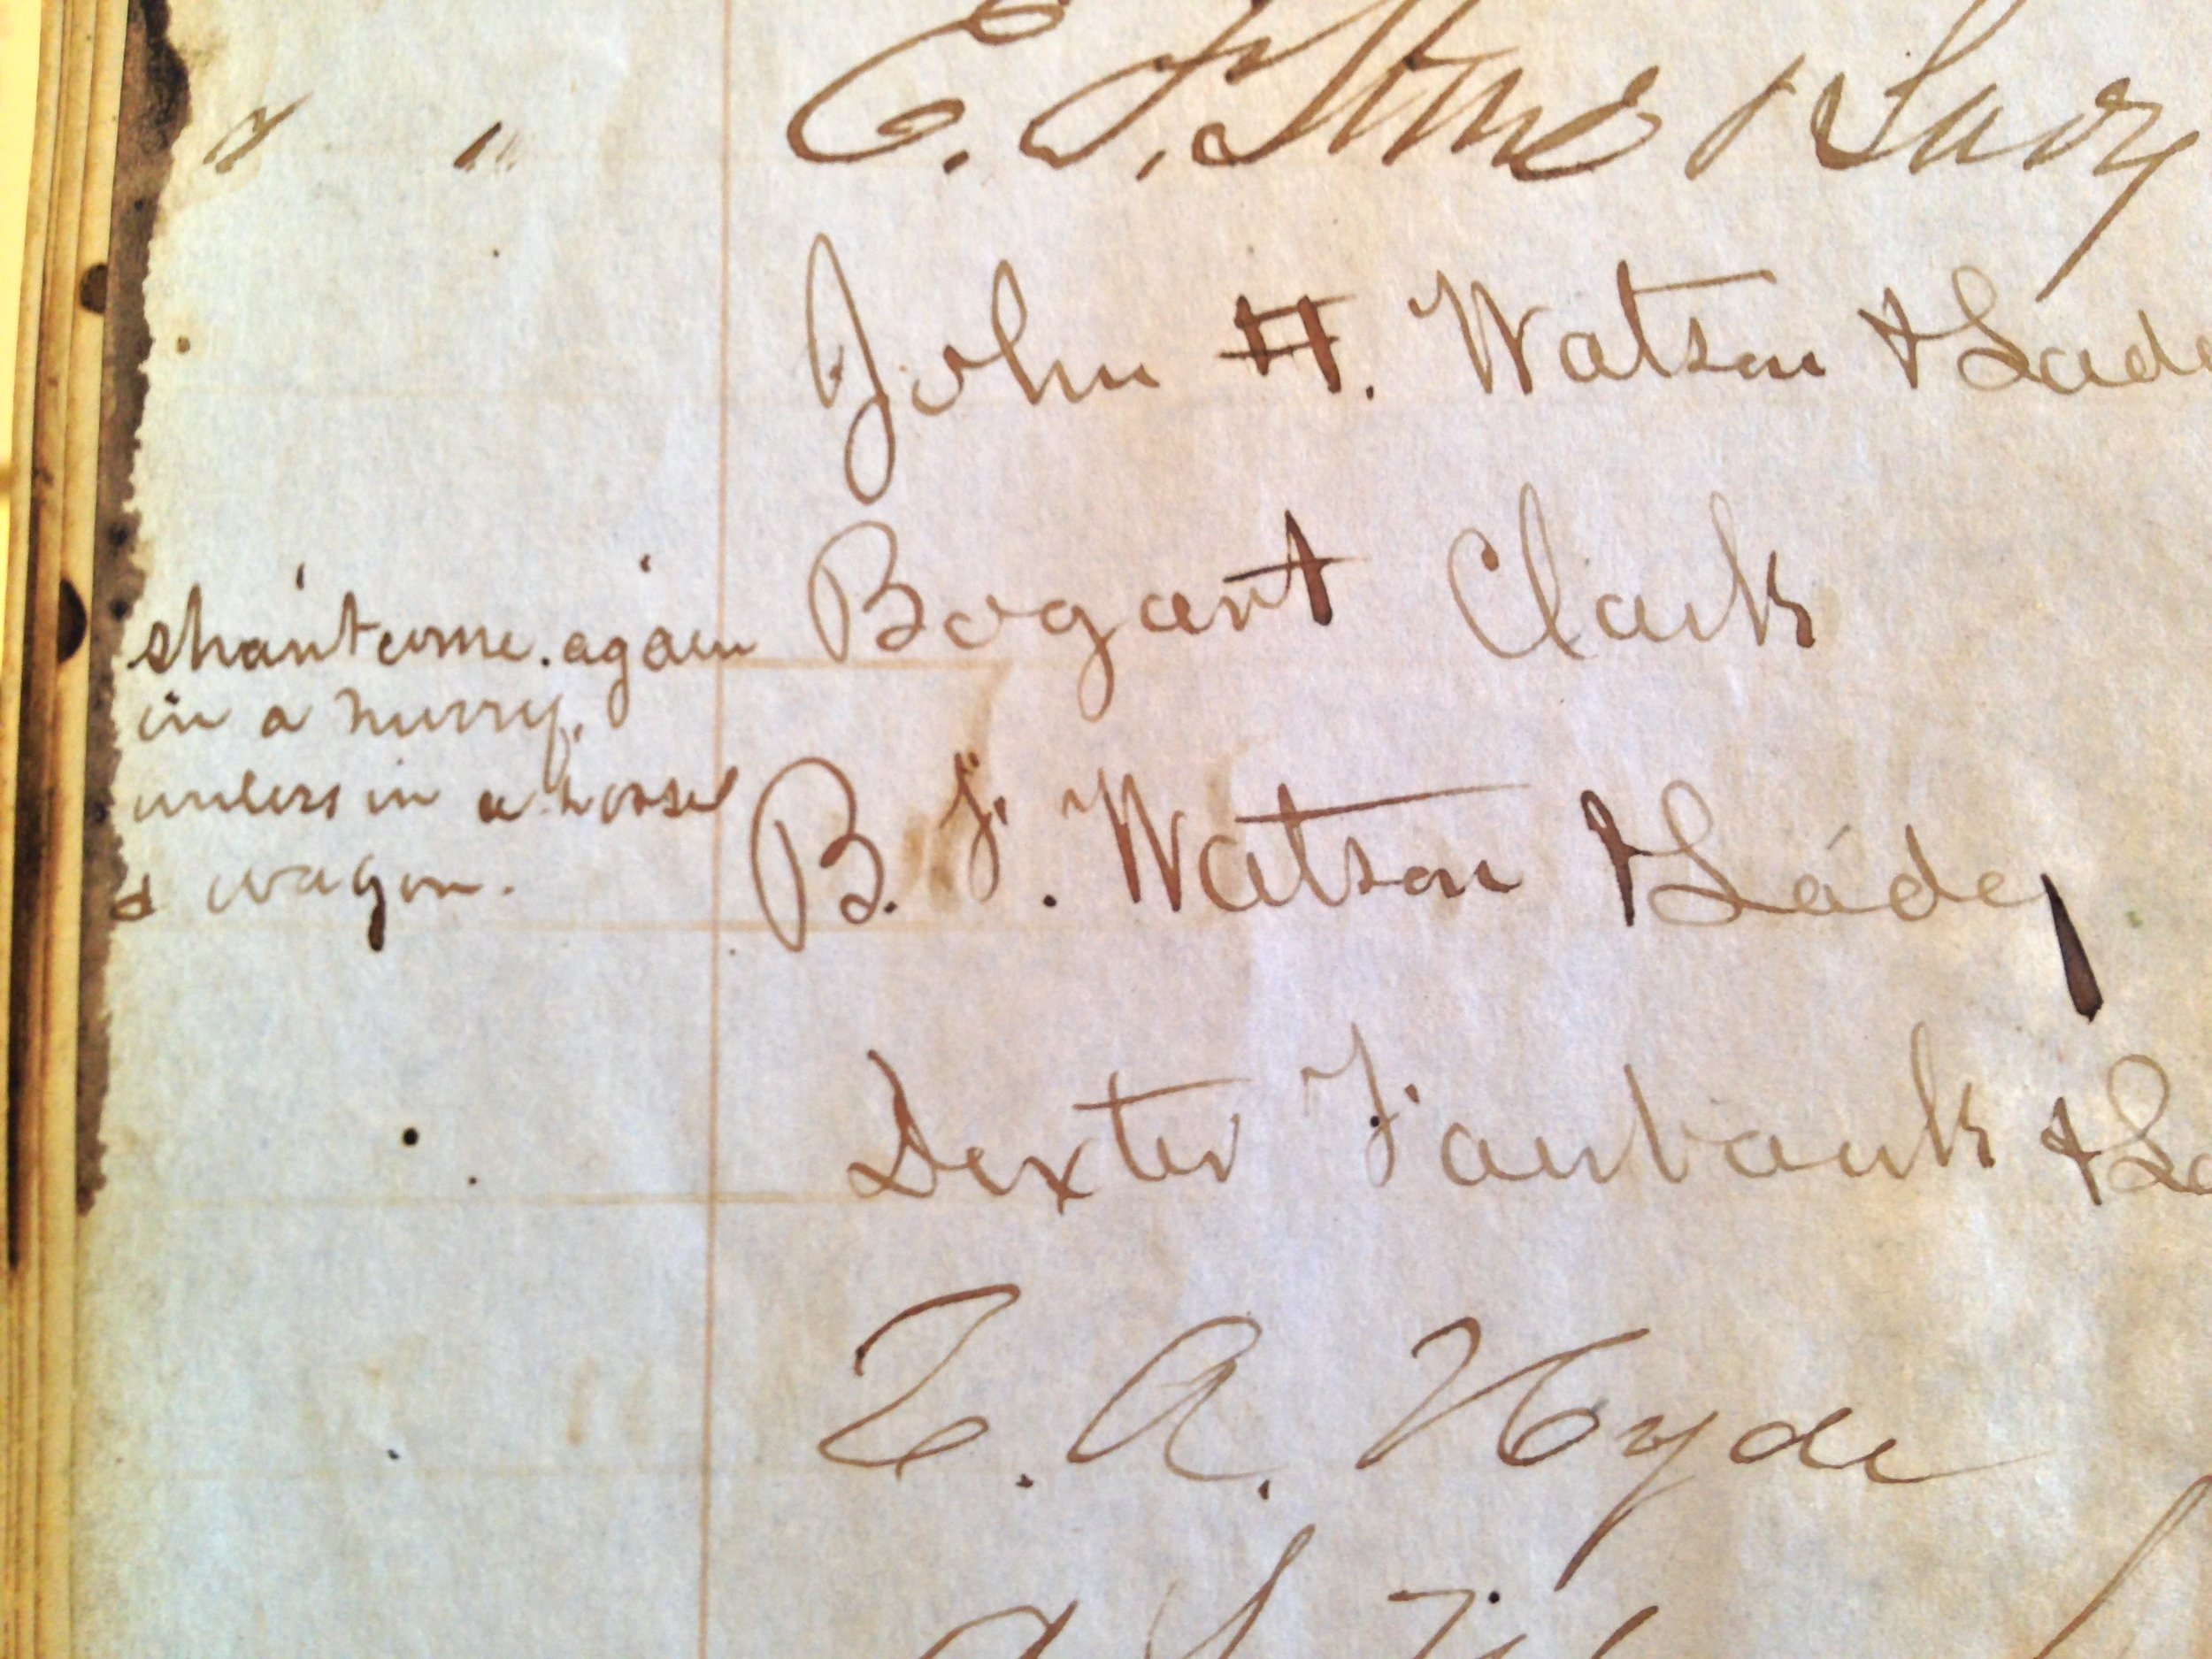 THis PHOTO is OF THE 1854 MT. WASHINGTON SUMMIT HOUSE GUEST REGISTRY, WHICH IS HOUSED AT THE NEW HAMPSHIRE HISTORICAL SOCIETY IN CONCORD, NH.